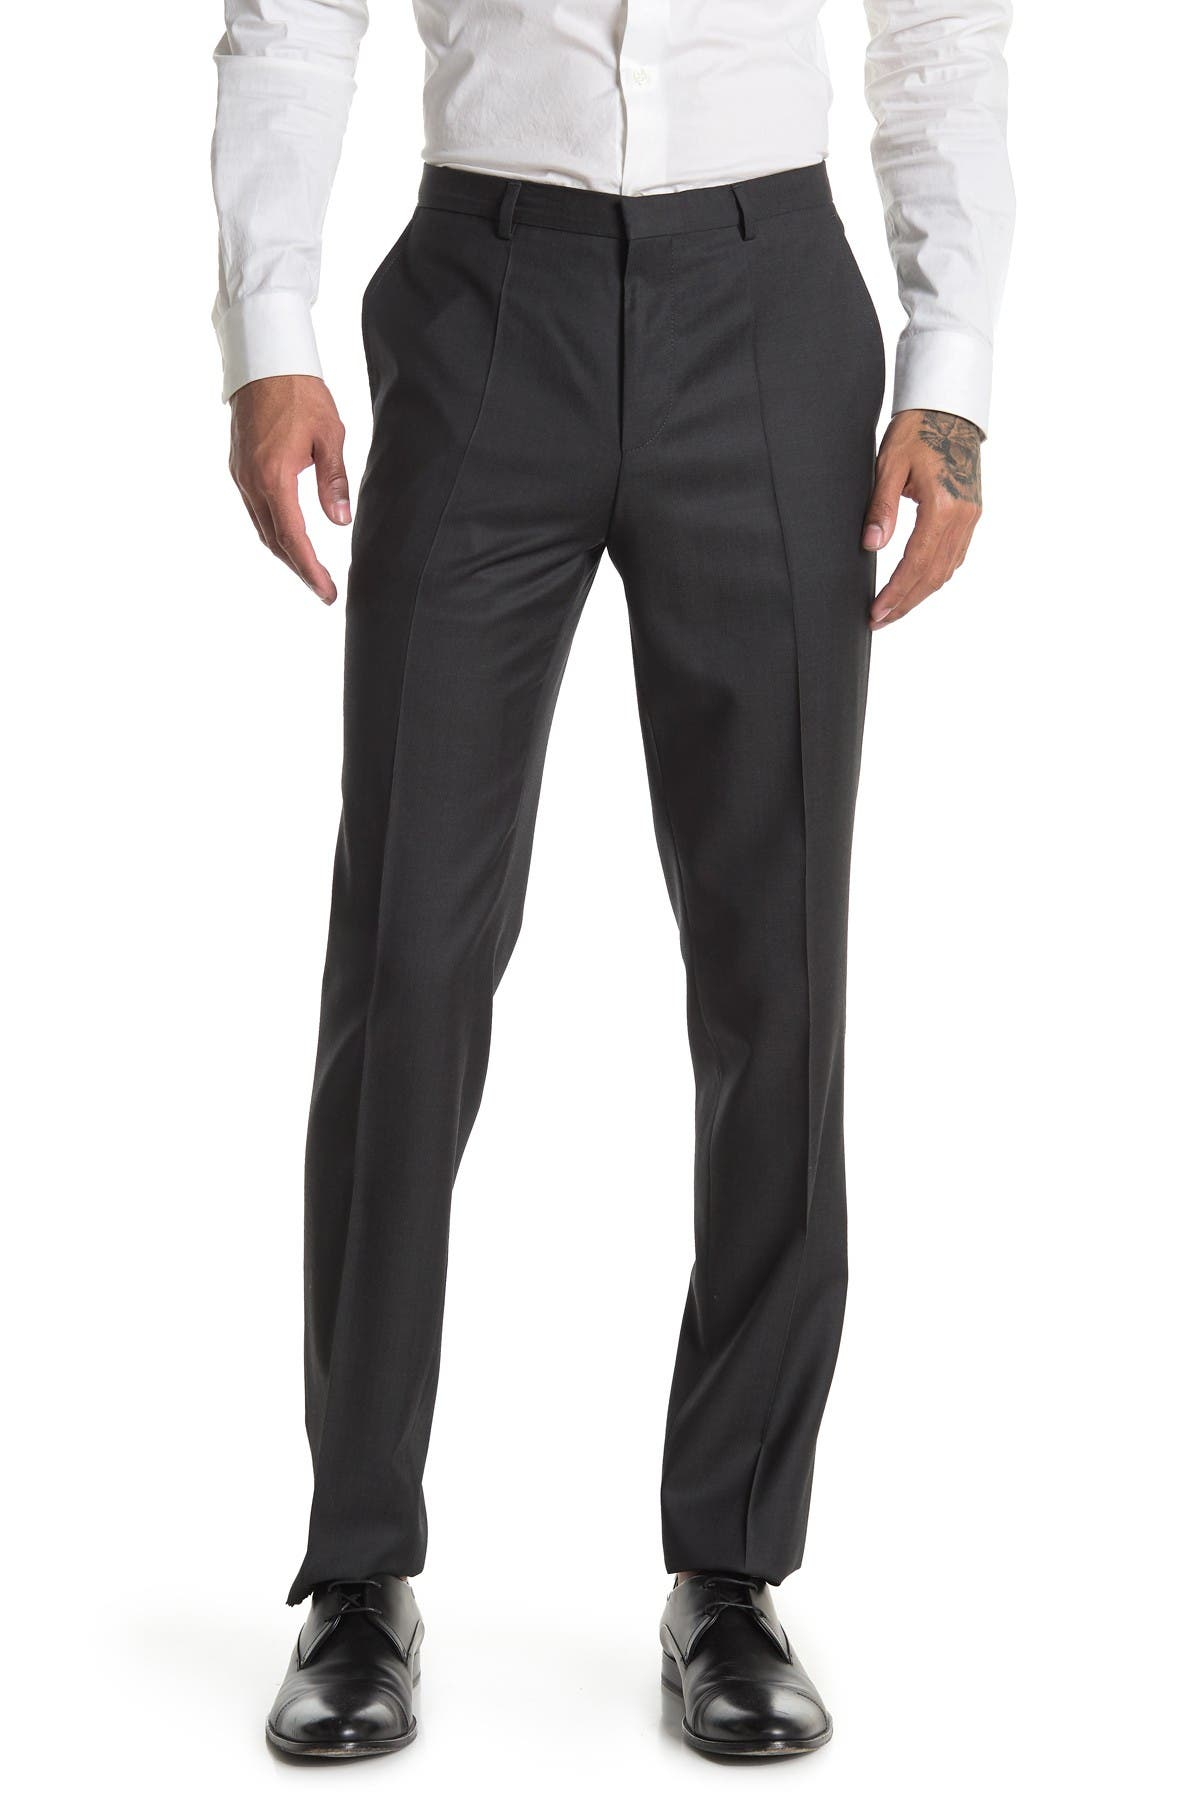 Image of BOSS Charcoal Solid Wool Pants